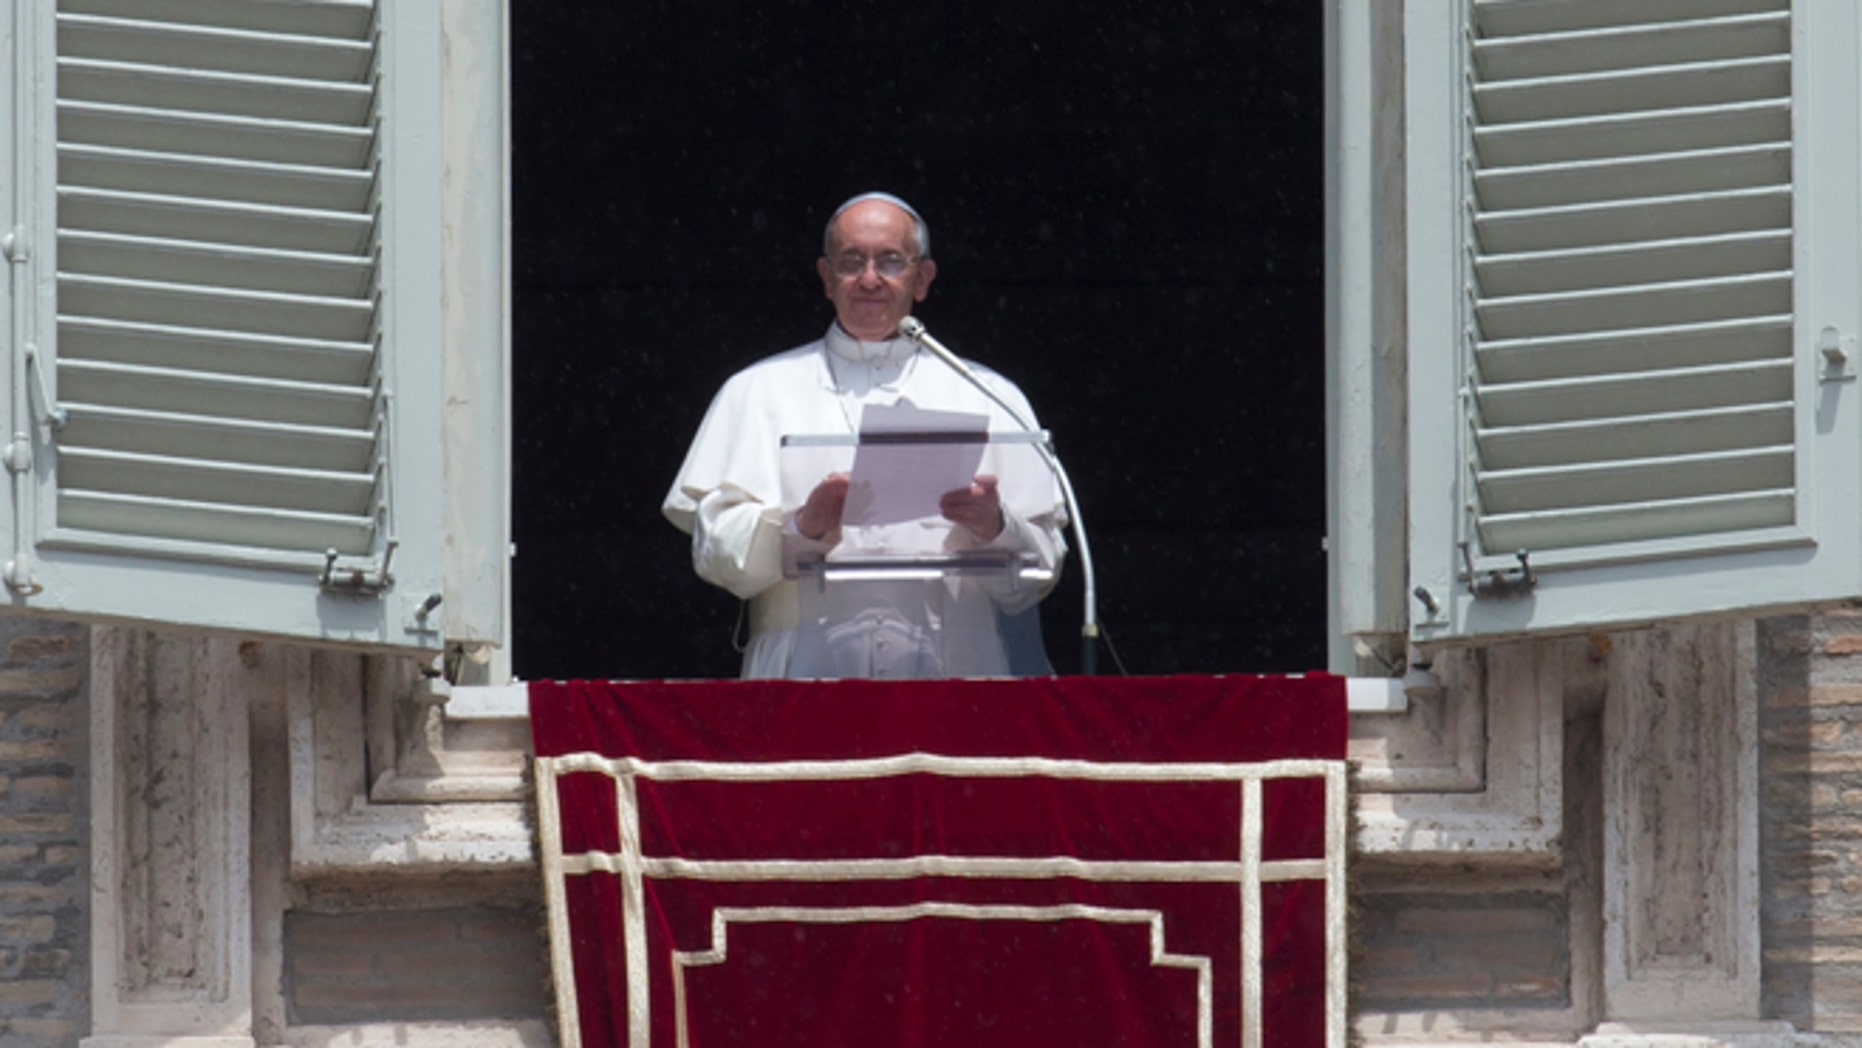 Pope Francis reads a message during the Angelus noon prayer he celebrated from the window of his studio overlooking St. Peter's square at the Vatican, Sunday, June 9, 2013.(AP Photo/Alessandra Tarantino)